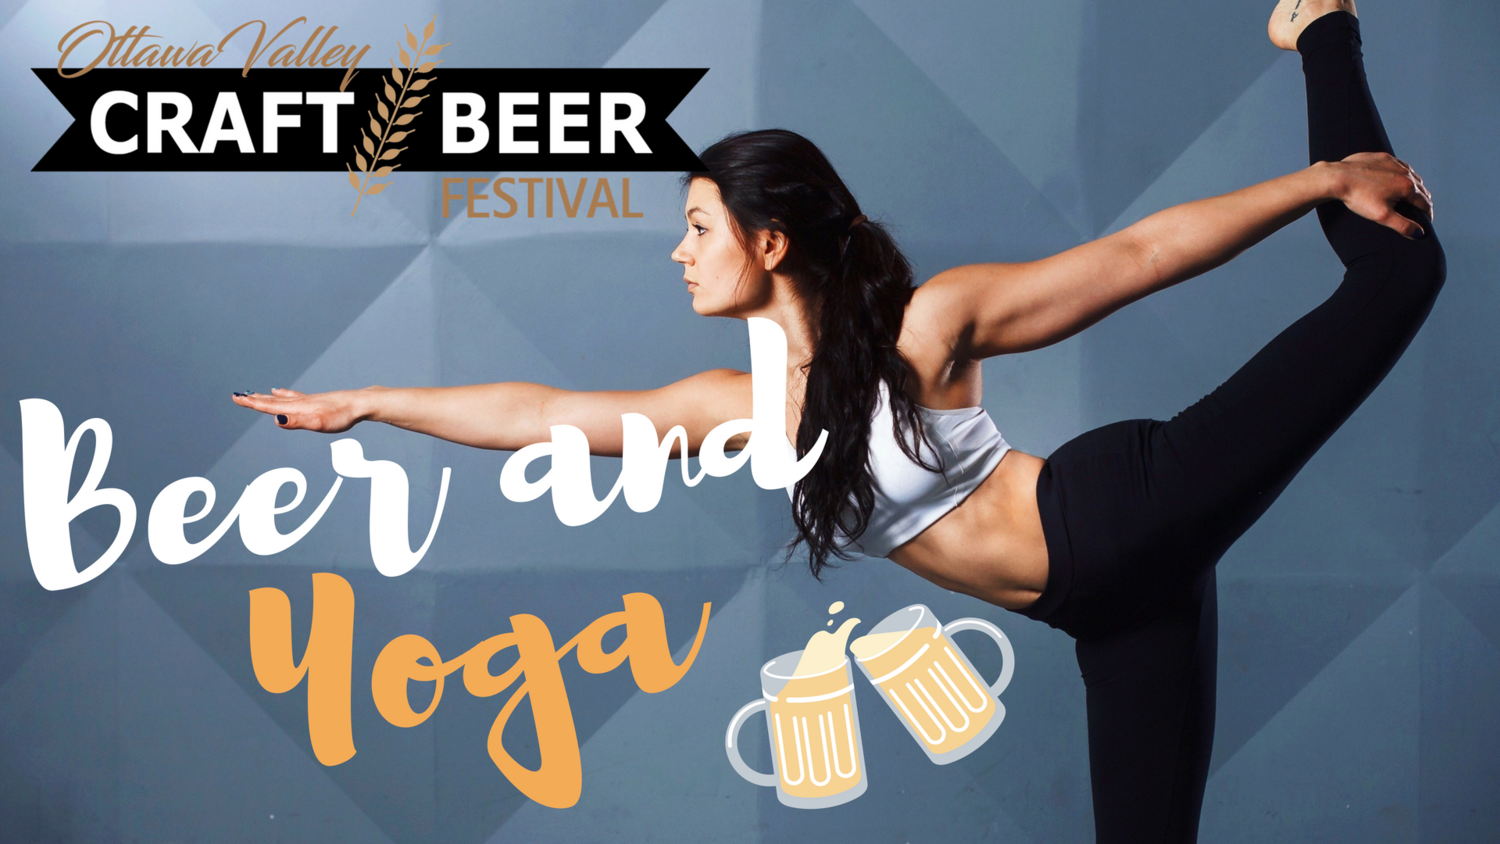 Ottawa Valley Craft Beer Festival - Beer and Yoga - 2019